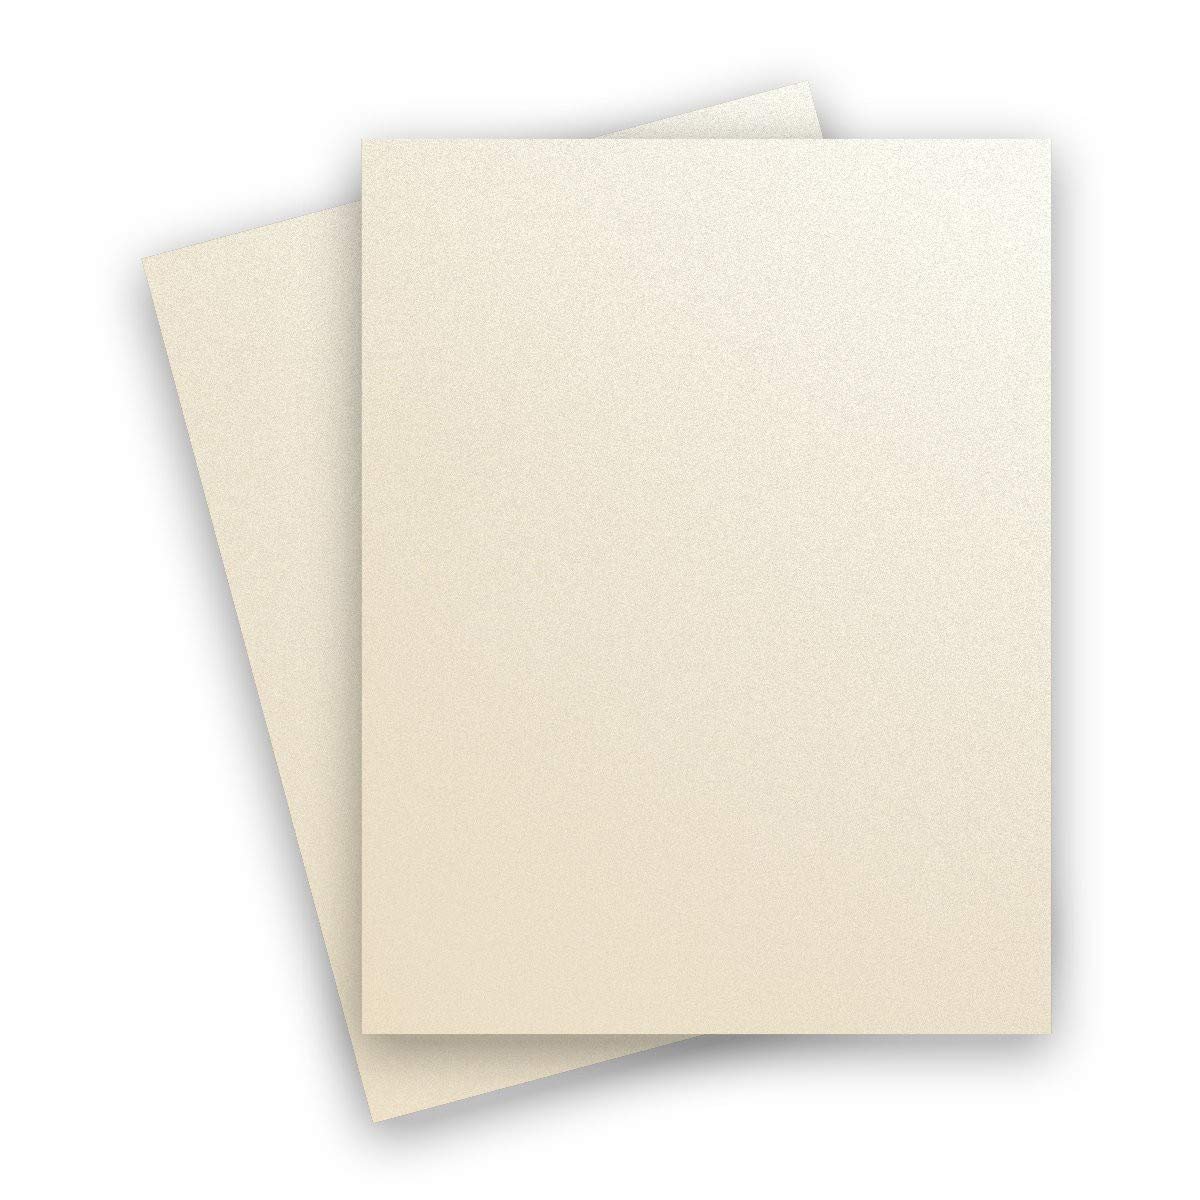 Metallic White Gold Champagne 8-1/2-x-11 Lightweight 32T Multi-use Paper 50-pk - PaperPapers 118 GSM (32/80lb Text) Letter Size Everyday Paper - Professionals, Designers, Crafters and DIY Projects by Paper Papers